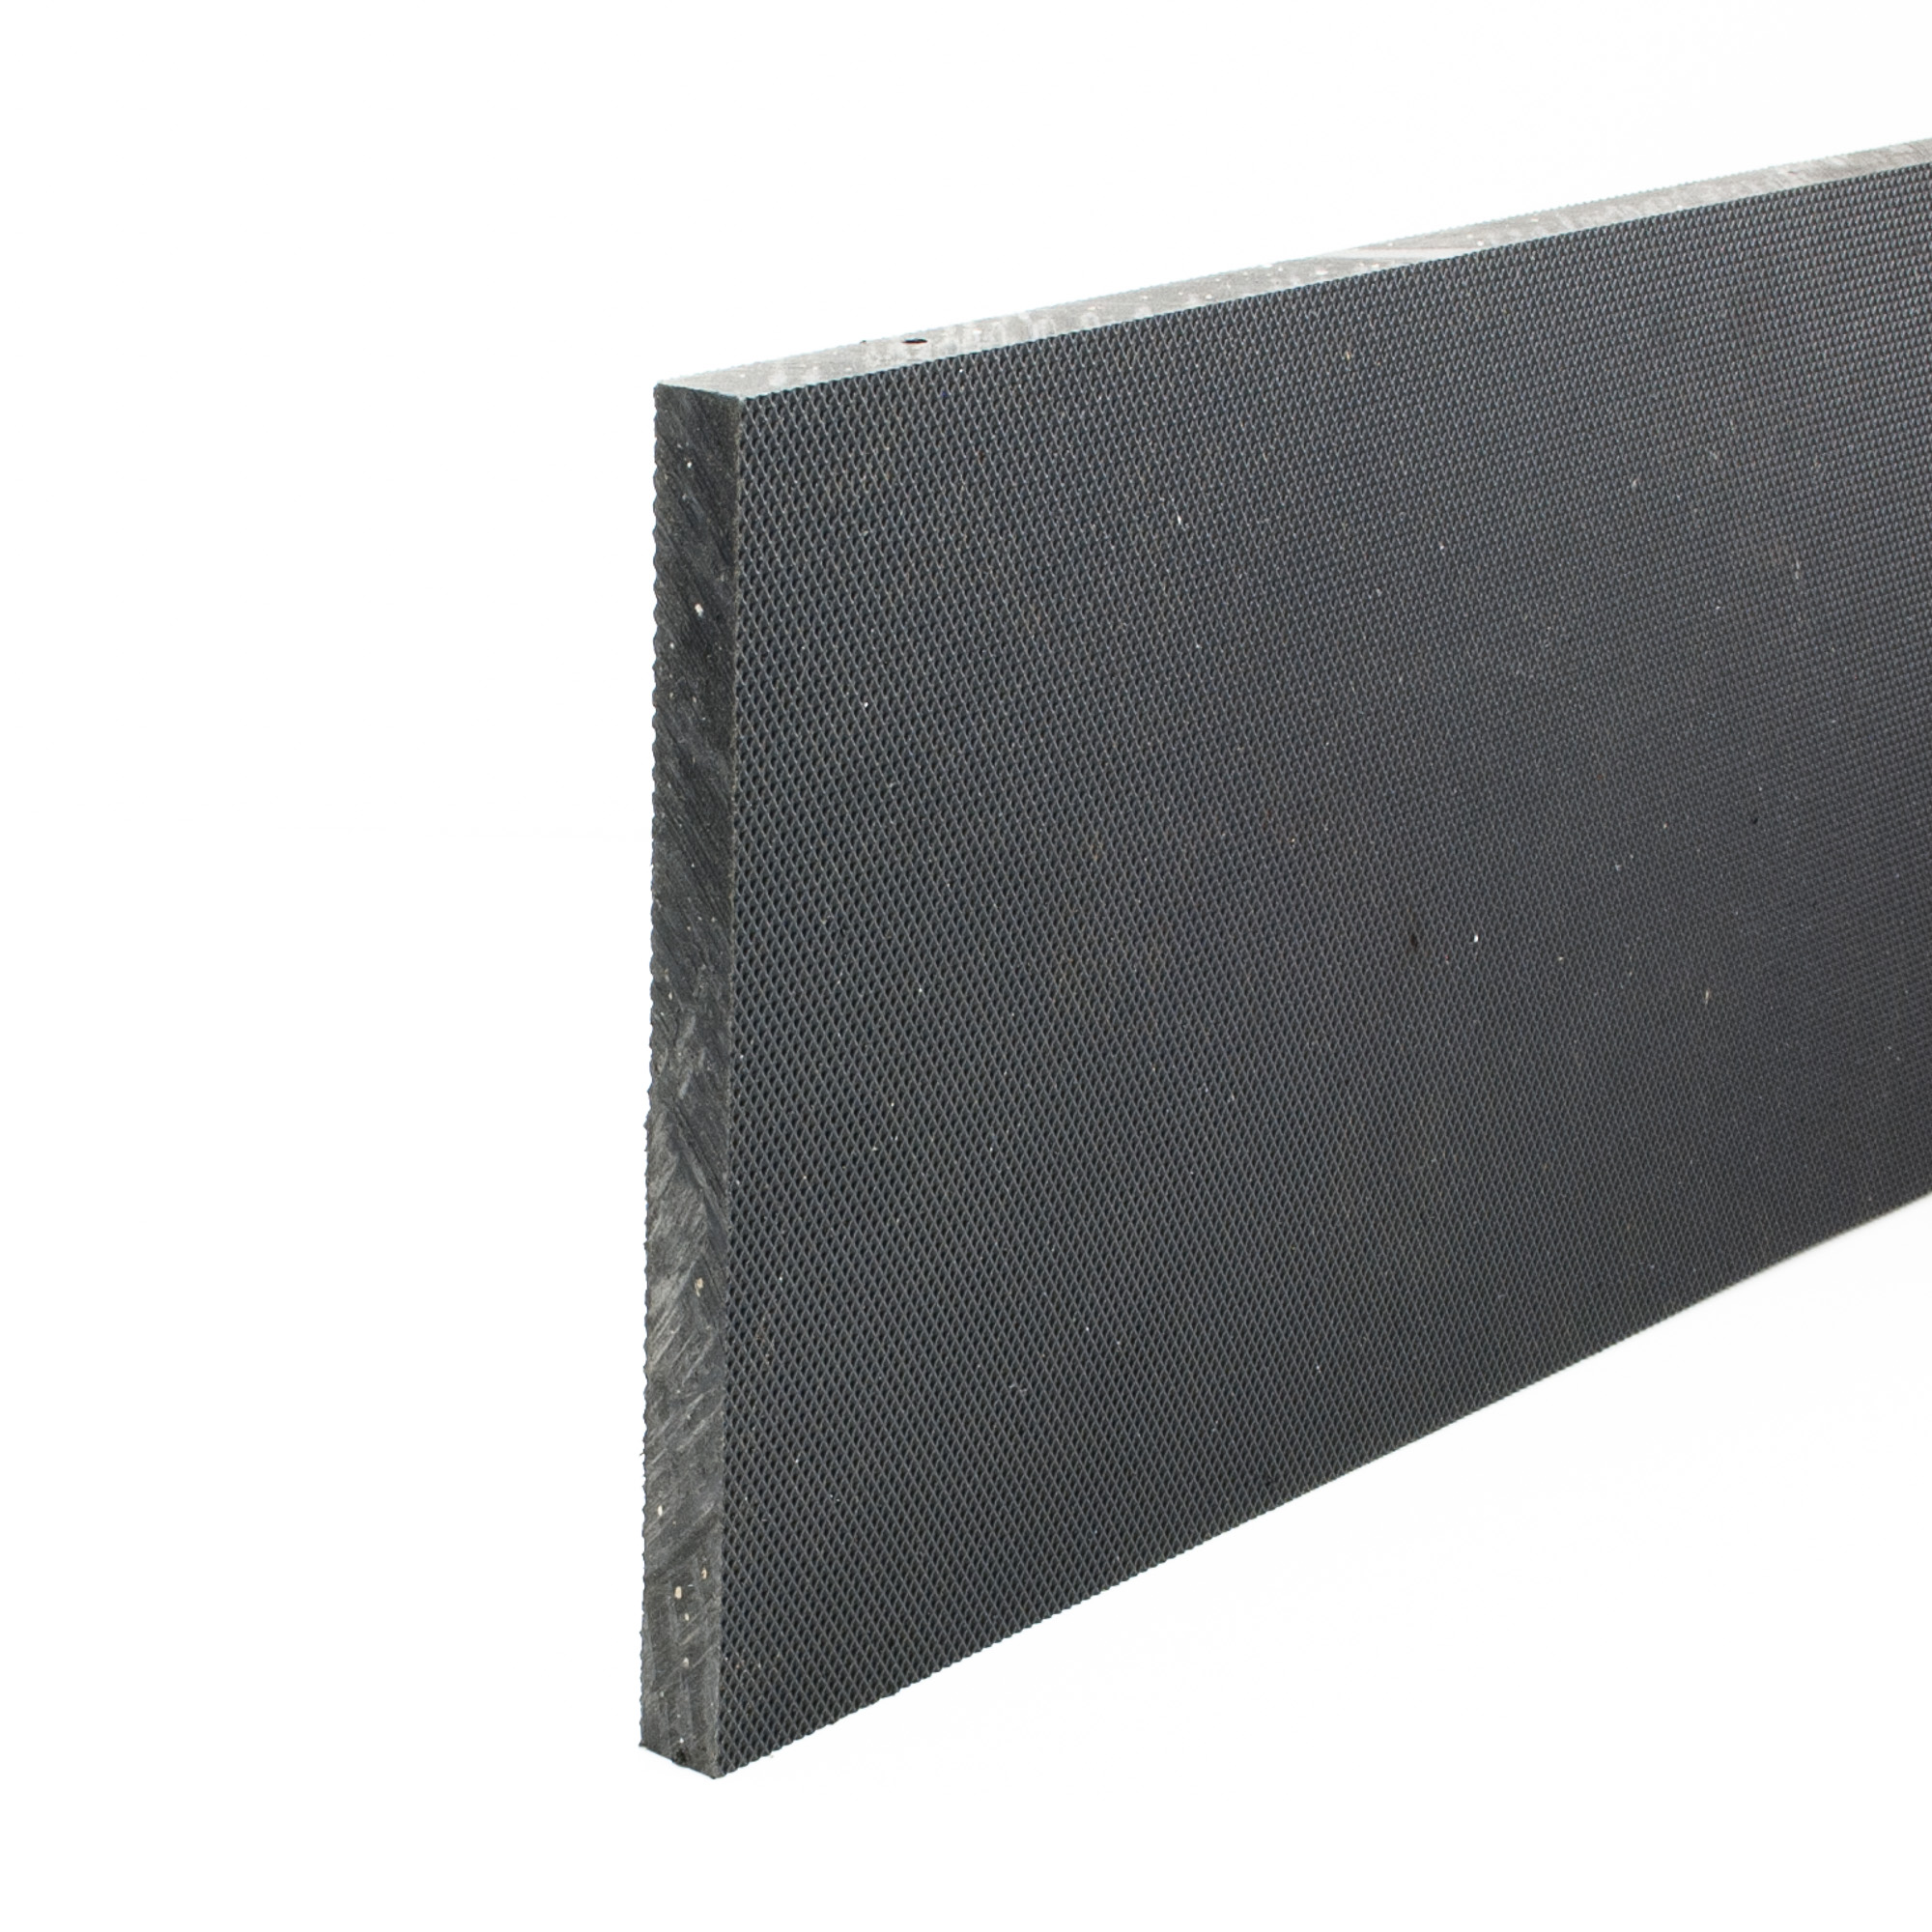 Stokbord Embossed LDPE Black 12mm x 0.6m x 1.22m sheet